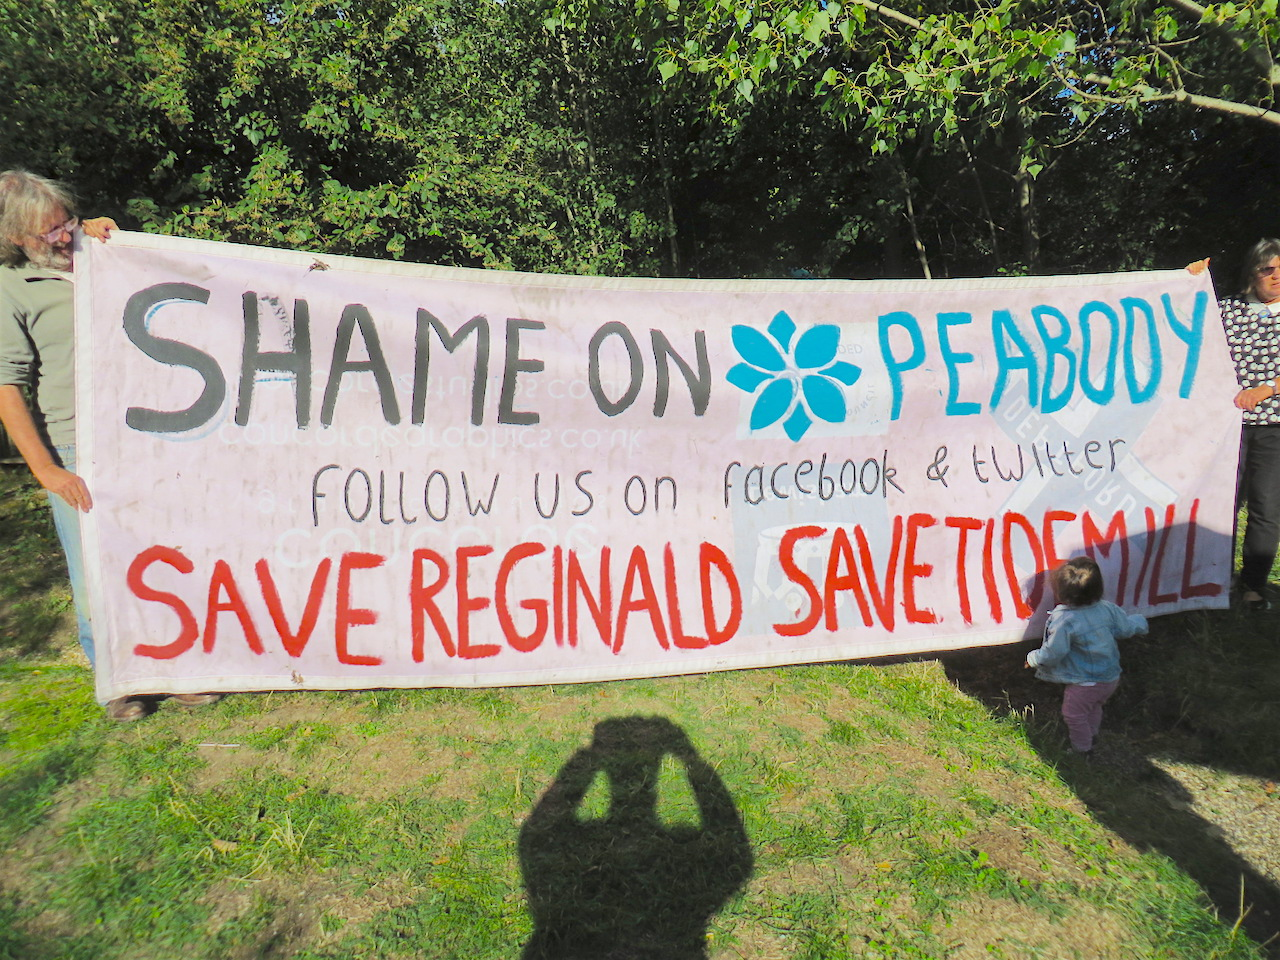 'Shame on Peabody': a banner held by campaigners in the Old Tidemill Wildlife Garden in Deptford, which has been occupied since August 29, 2018 to prevent Lewisham Council and Peabody from destroying it - and 16 structurally sound council flats next door - as part of a housing project (Photo: Andy Worthington).